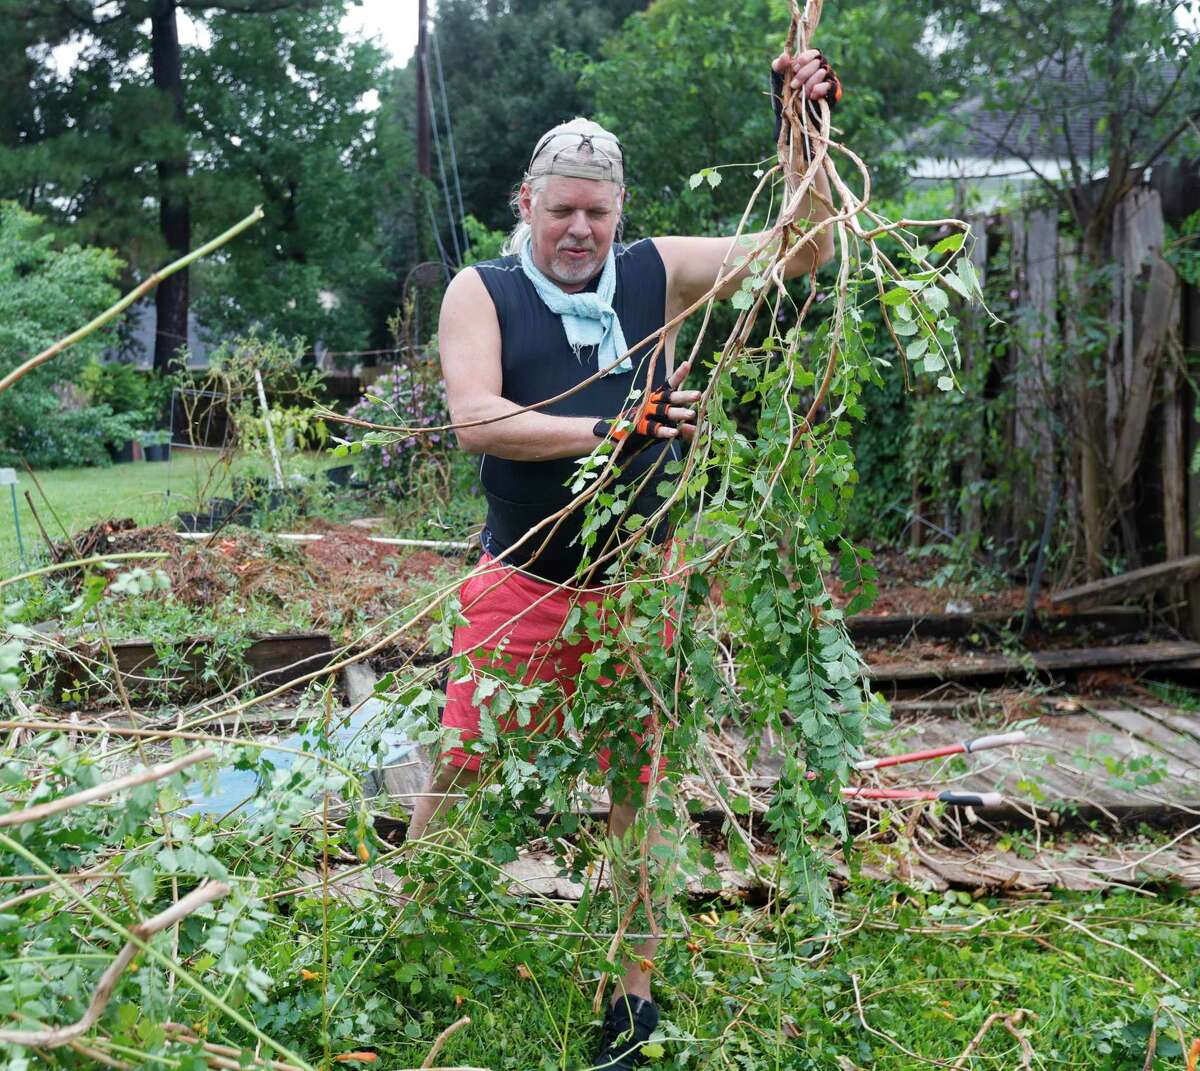 """Karl Gunderson works to remove brush and wood after wind from Tropical Storm Nicholas blew over the fence on east side of his home, Tuesday, Sept. 14, 2021, in Spring. """"It's really not that bad,"""" Gunderson said of the damage to his property. """"This storm could have been much worst."""""""